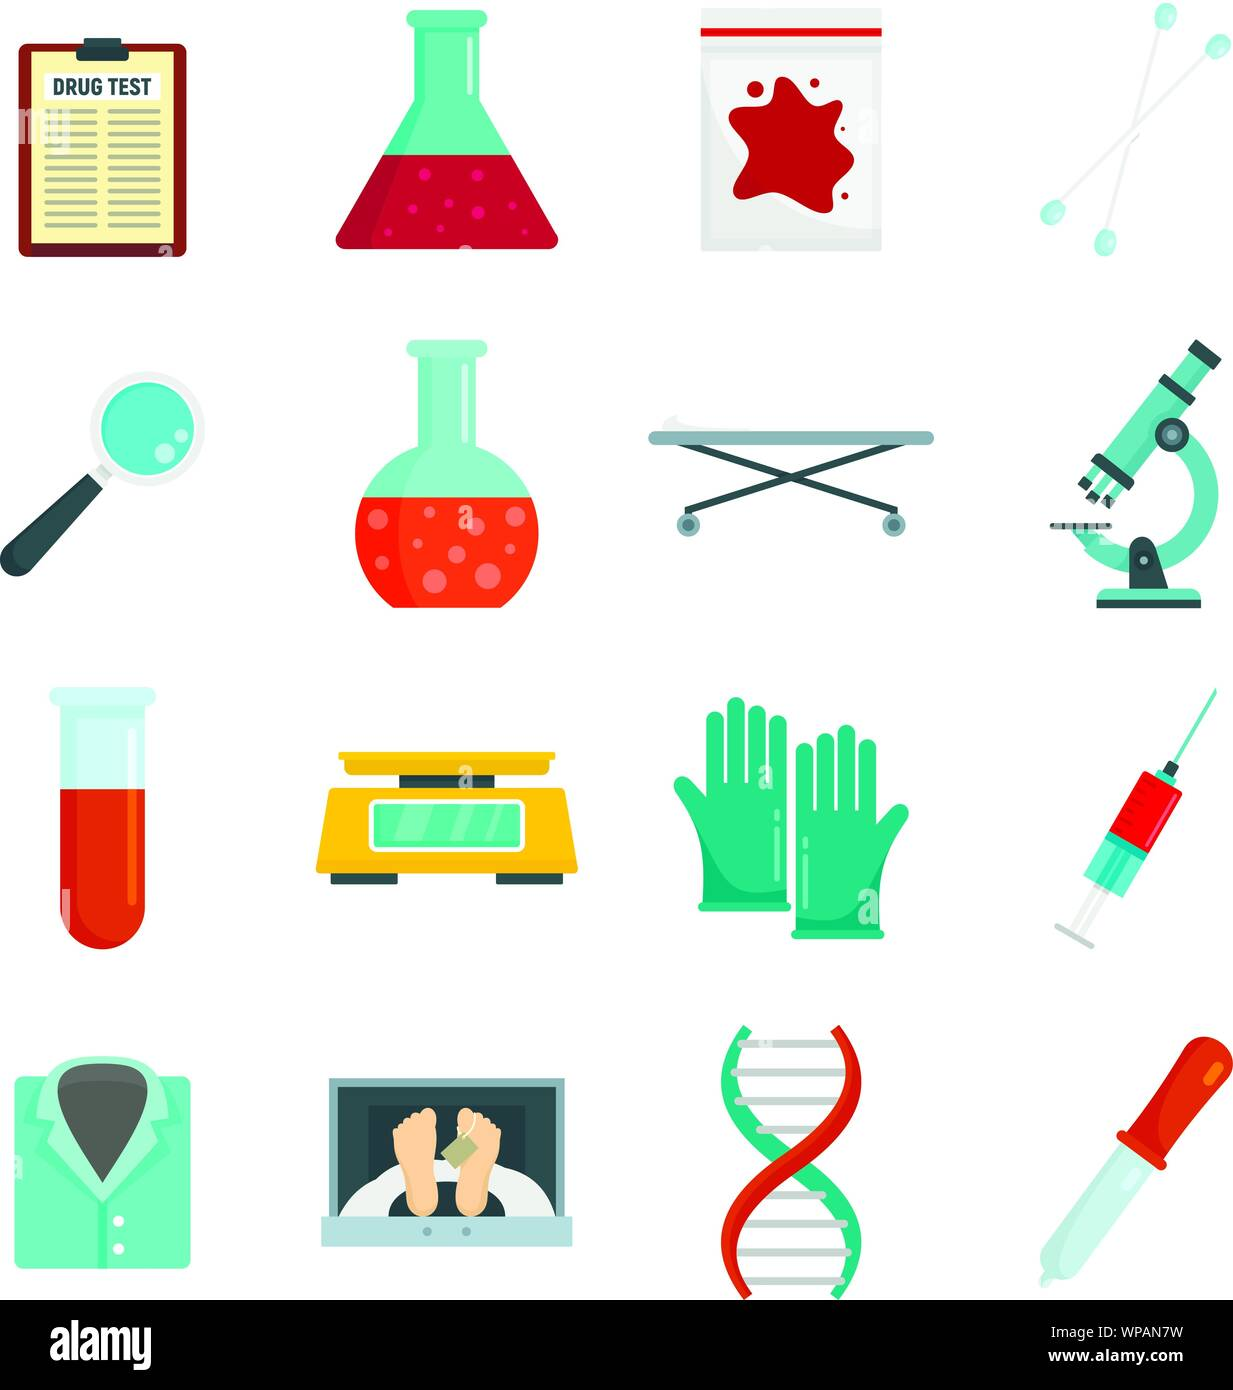 Page 2 Crime Laboratory High Resolution Stock Photography And Images Alamy